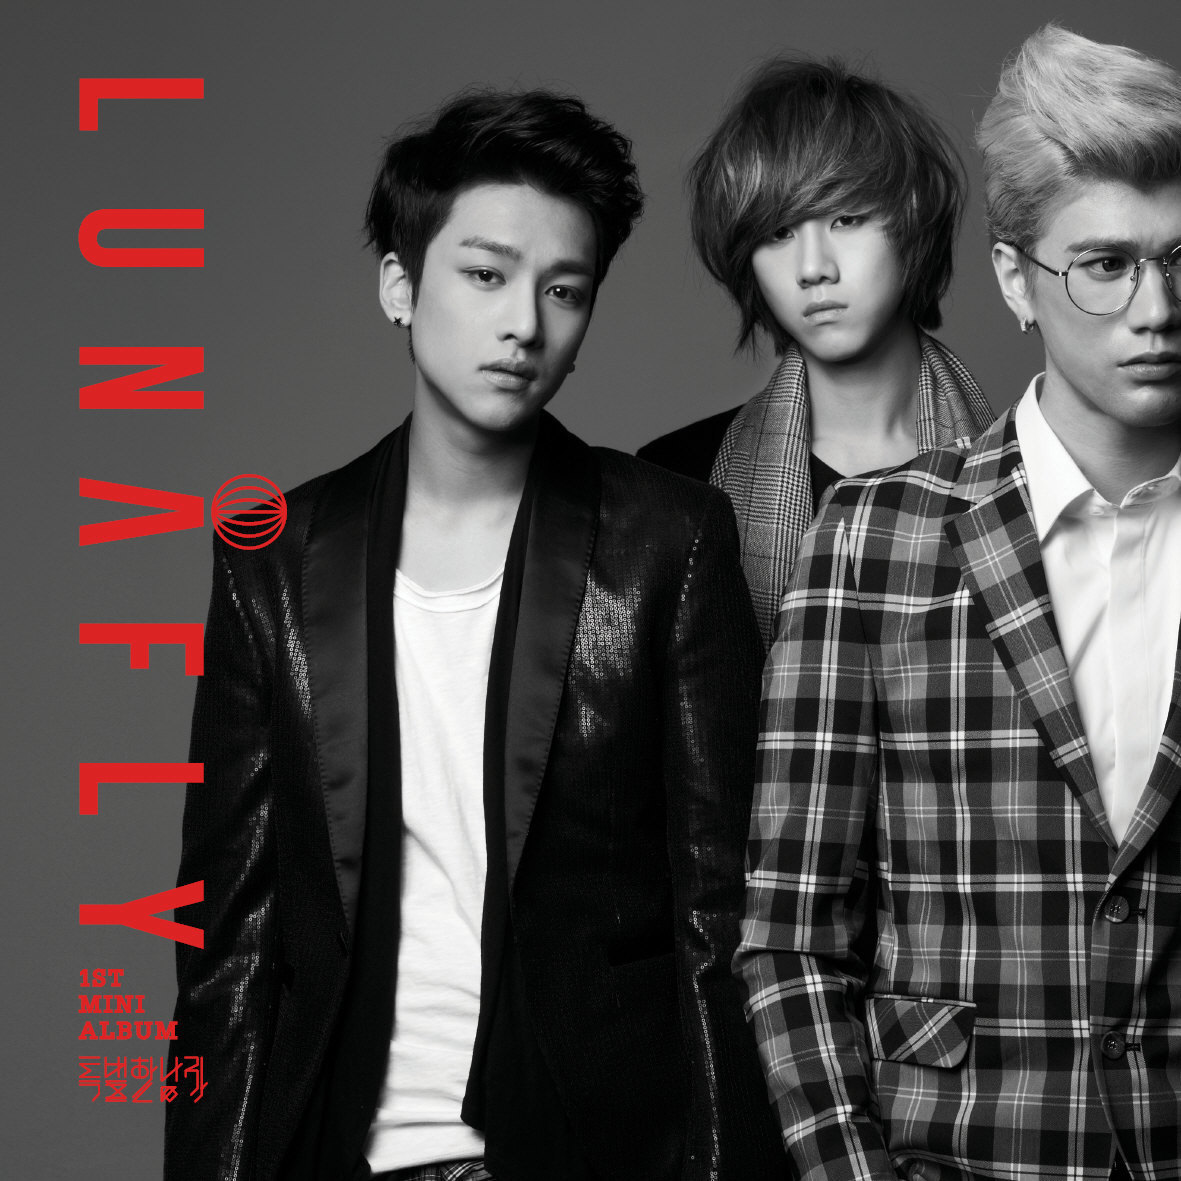 20151118.02 Lunafly - Special Guy cover.jpg